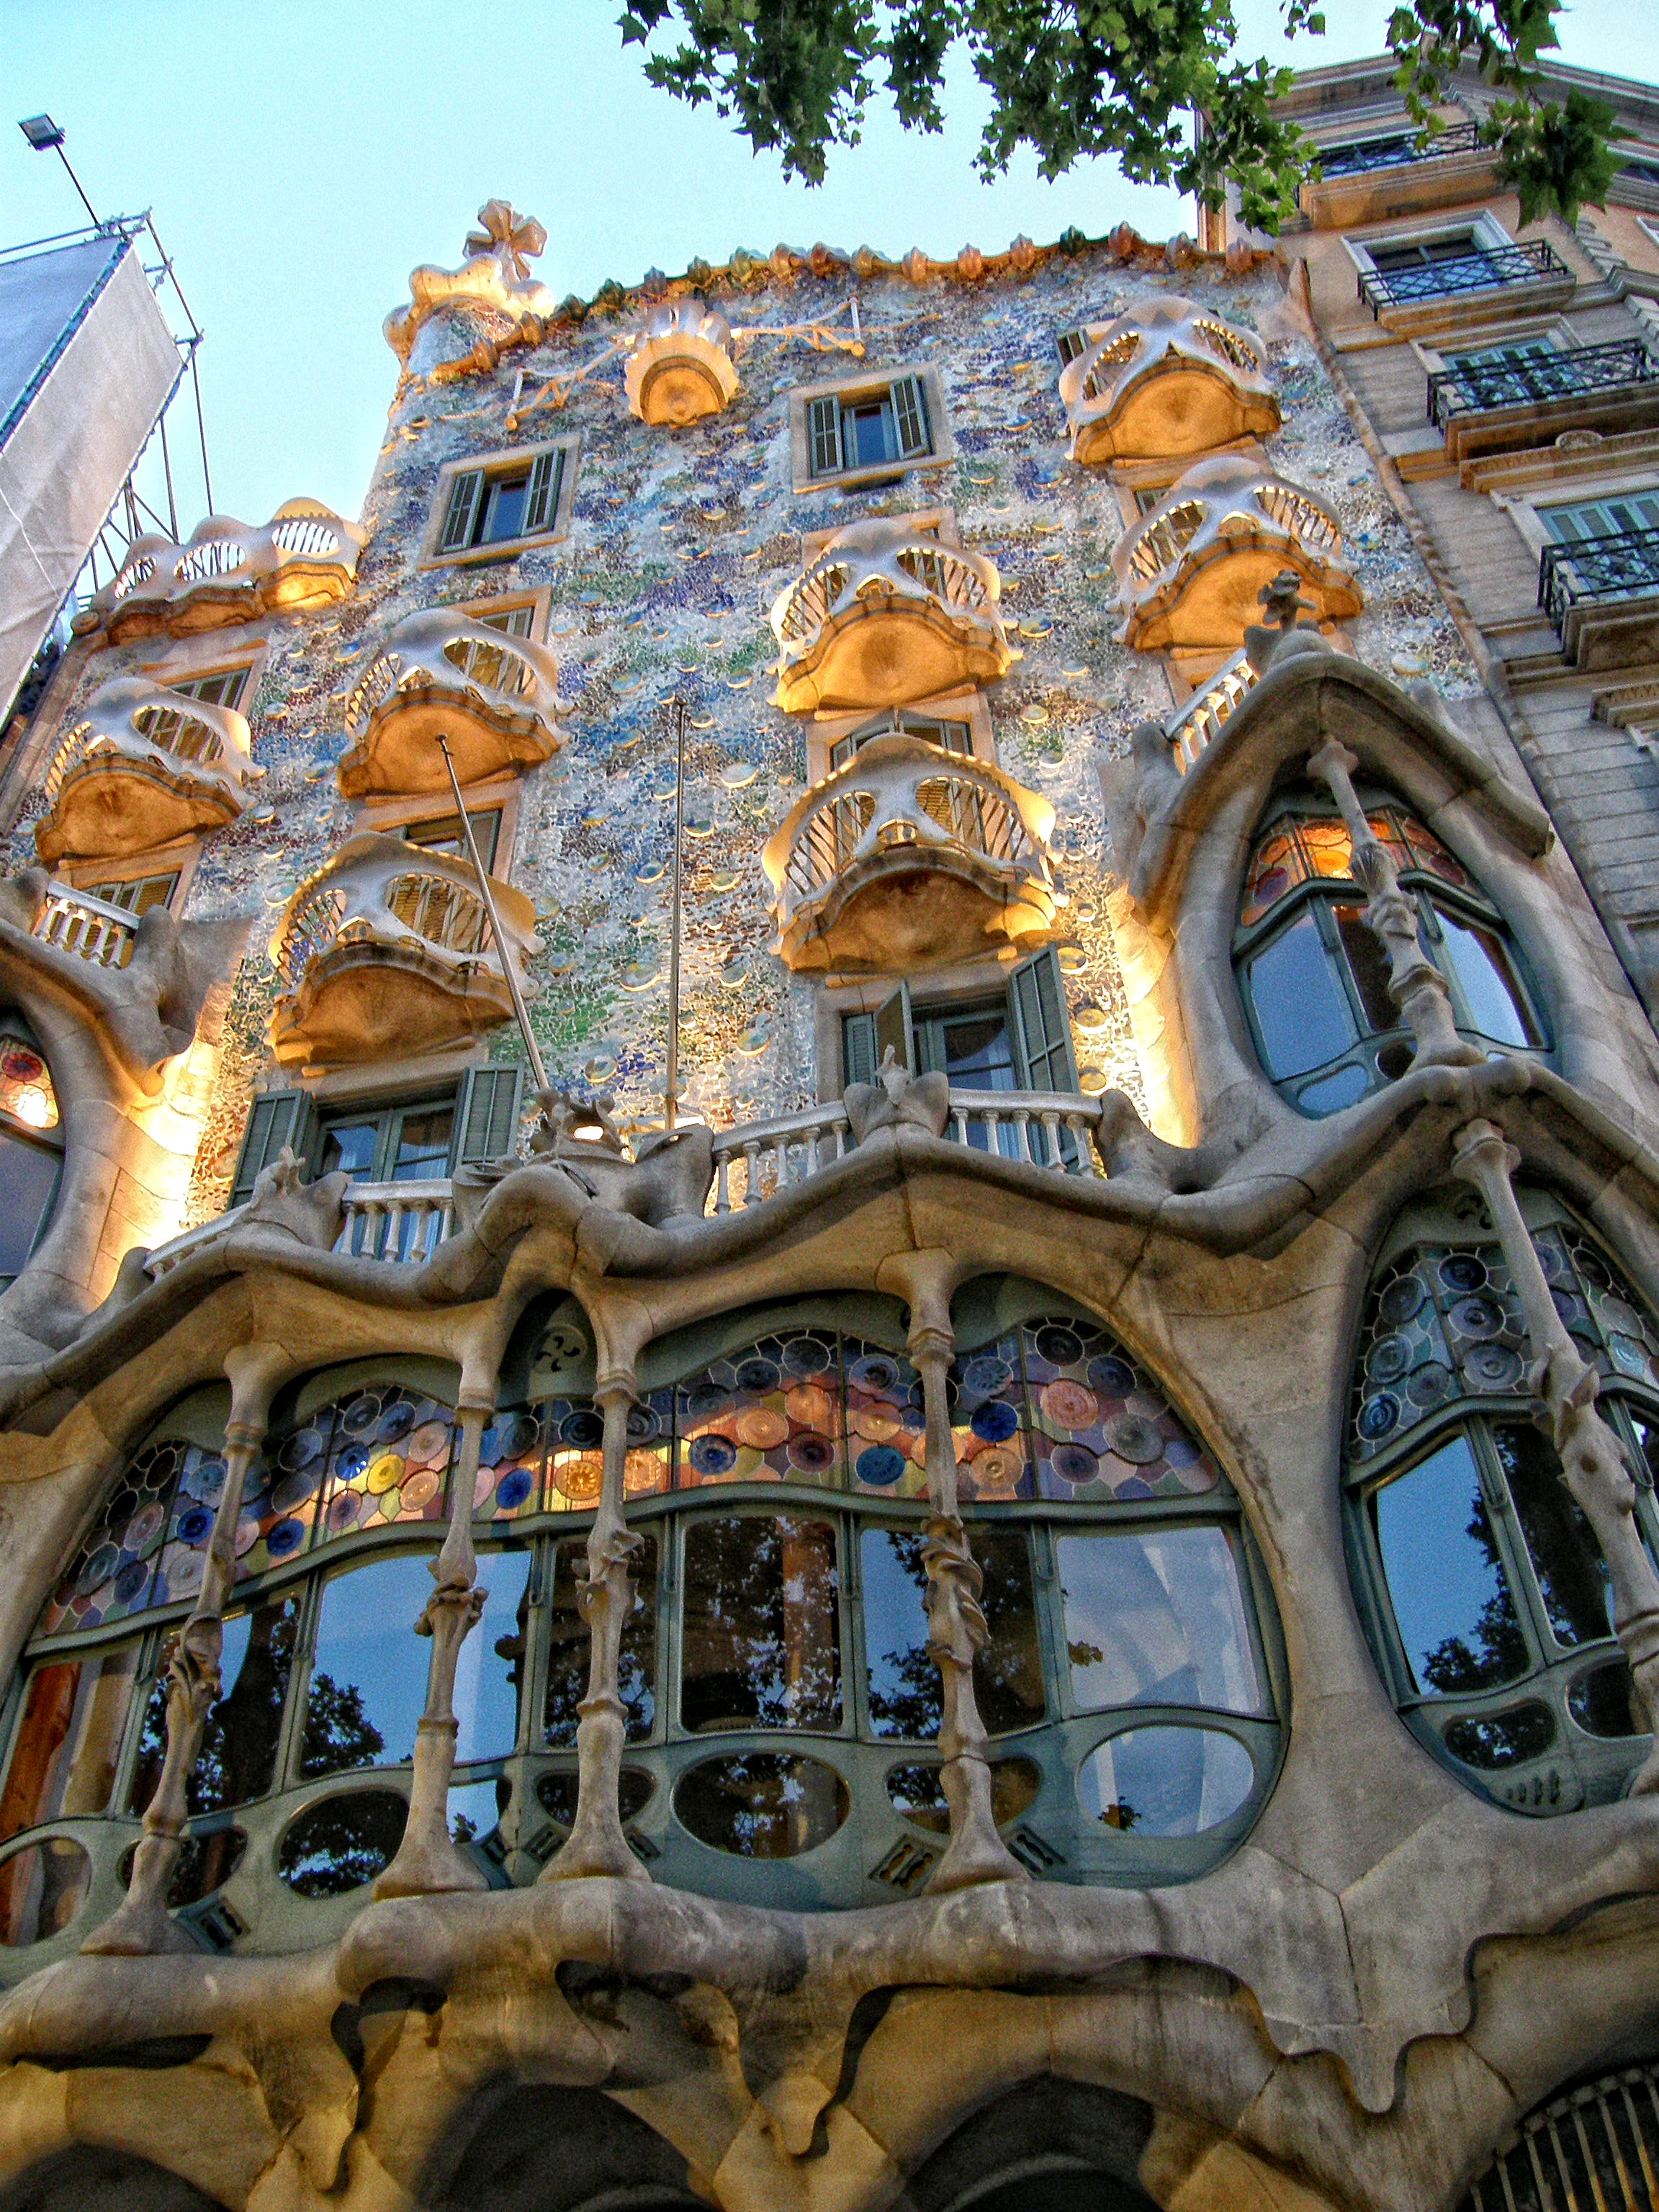 Casa Batllo Description